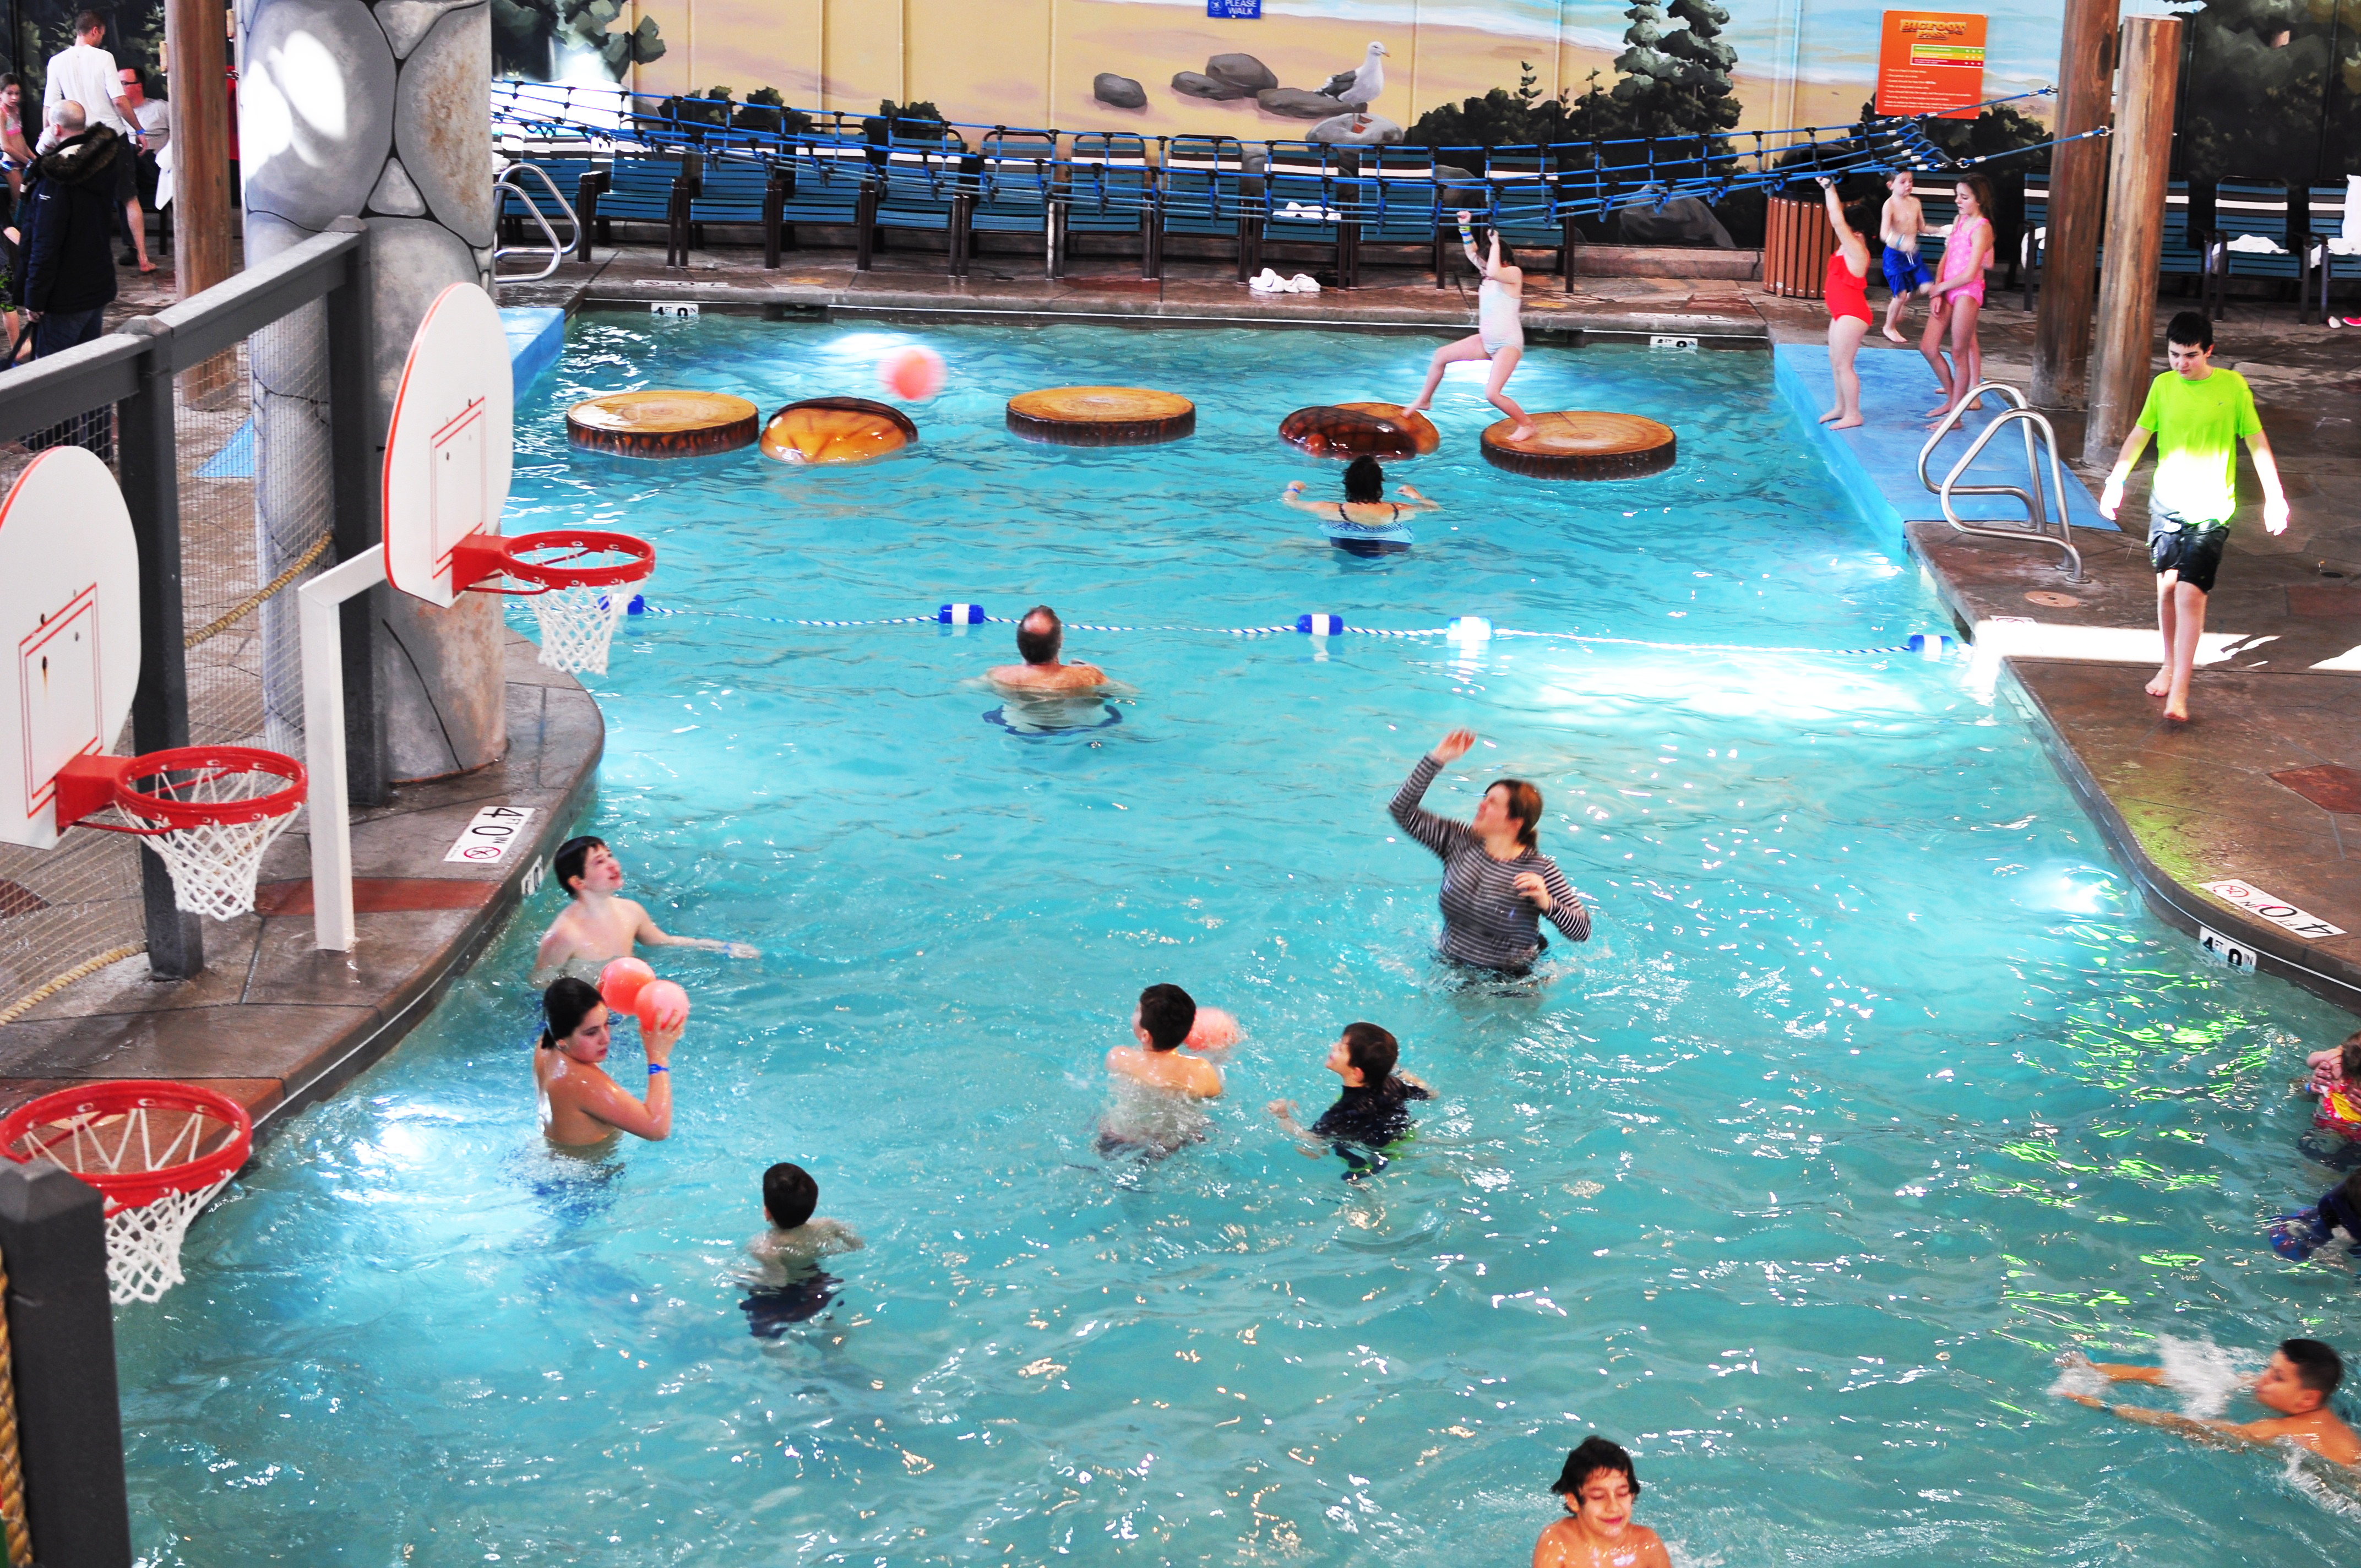 I survived after making tracks to Great Wolf Lodge - The